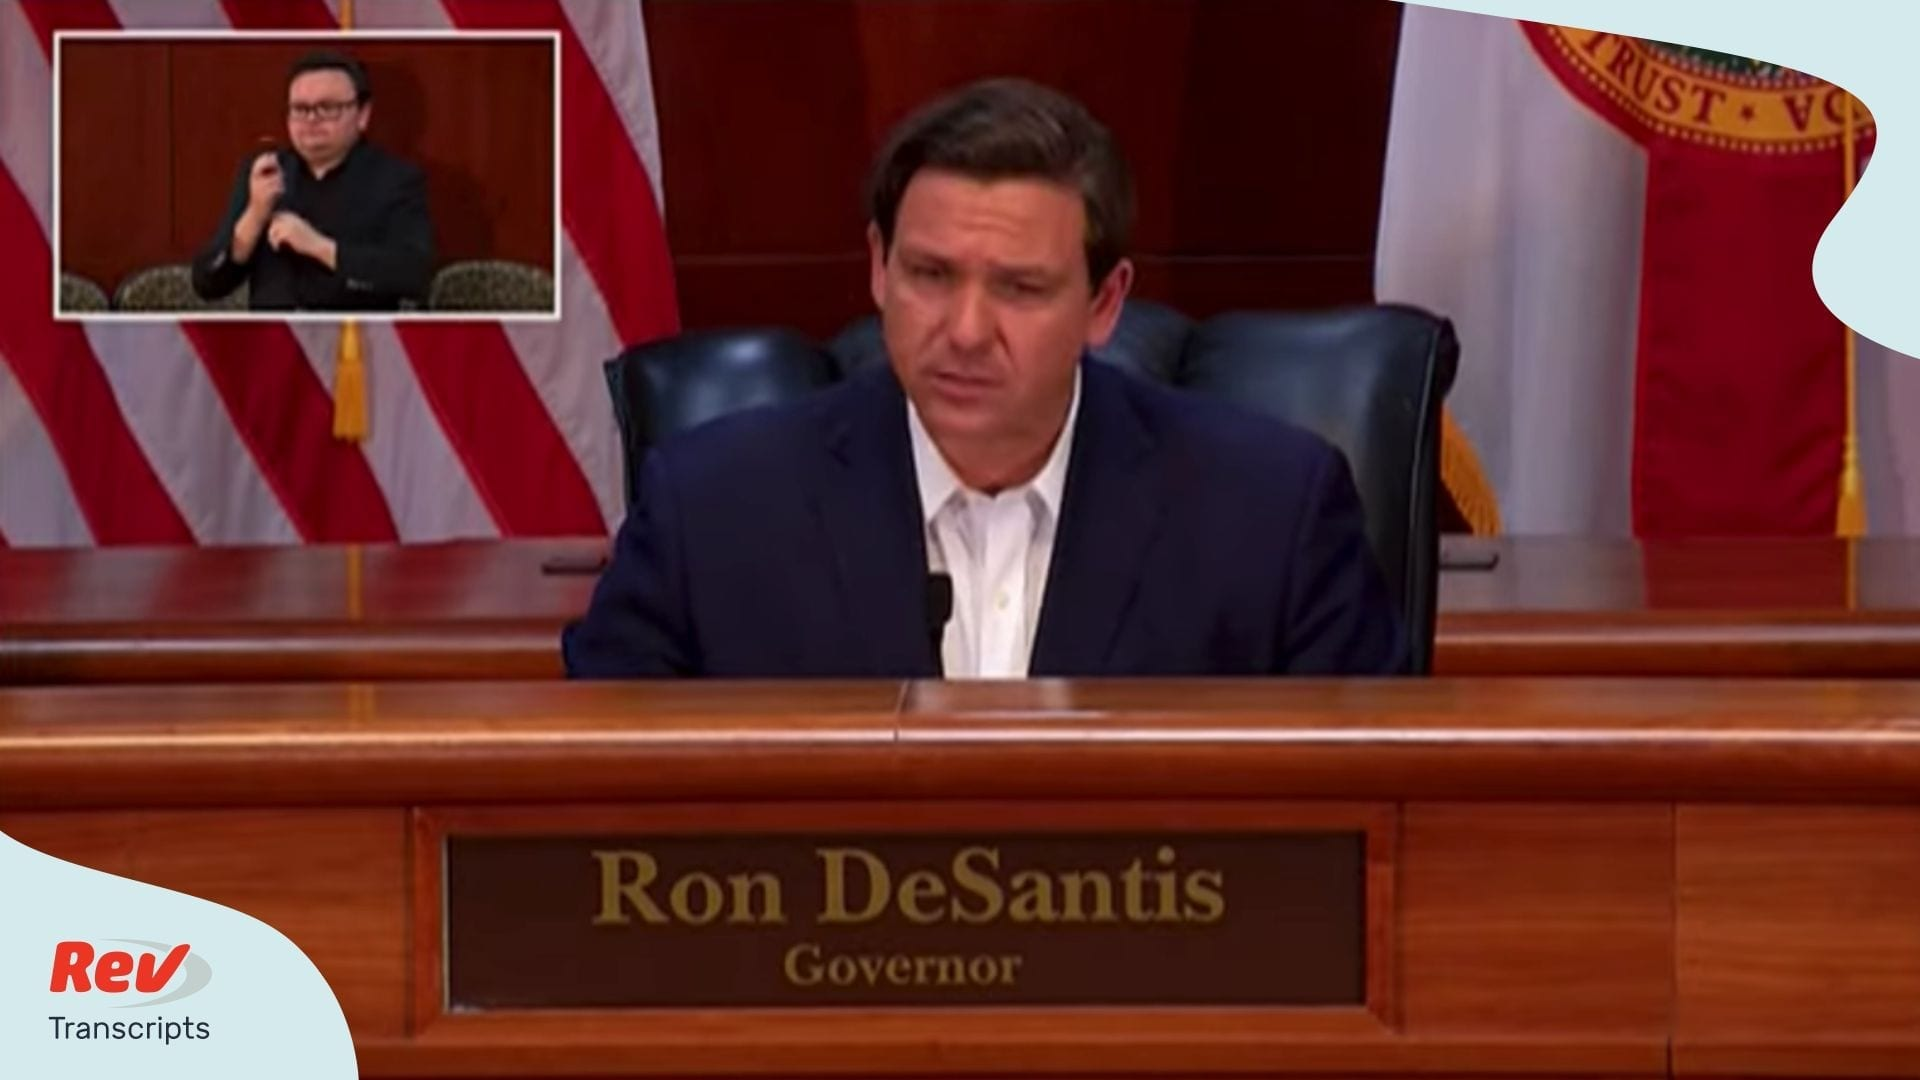 Florida Governor Ron DeSantis April 2